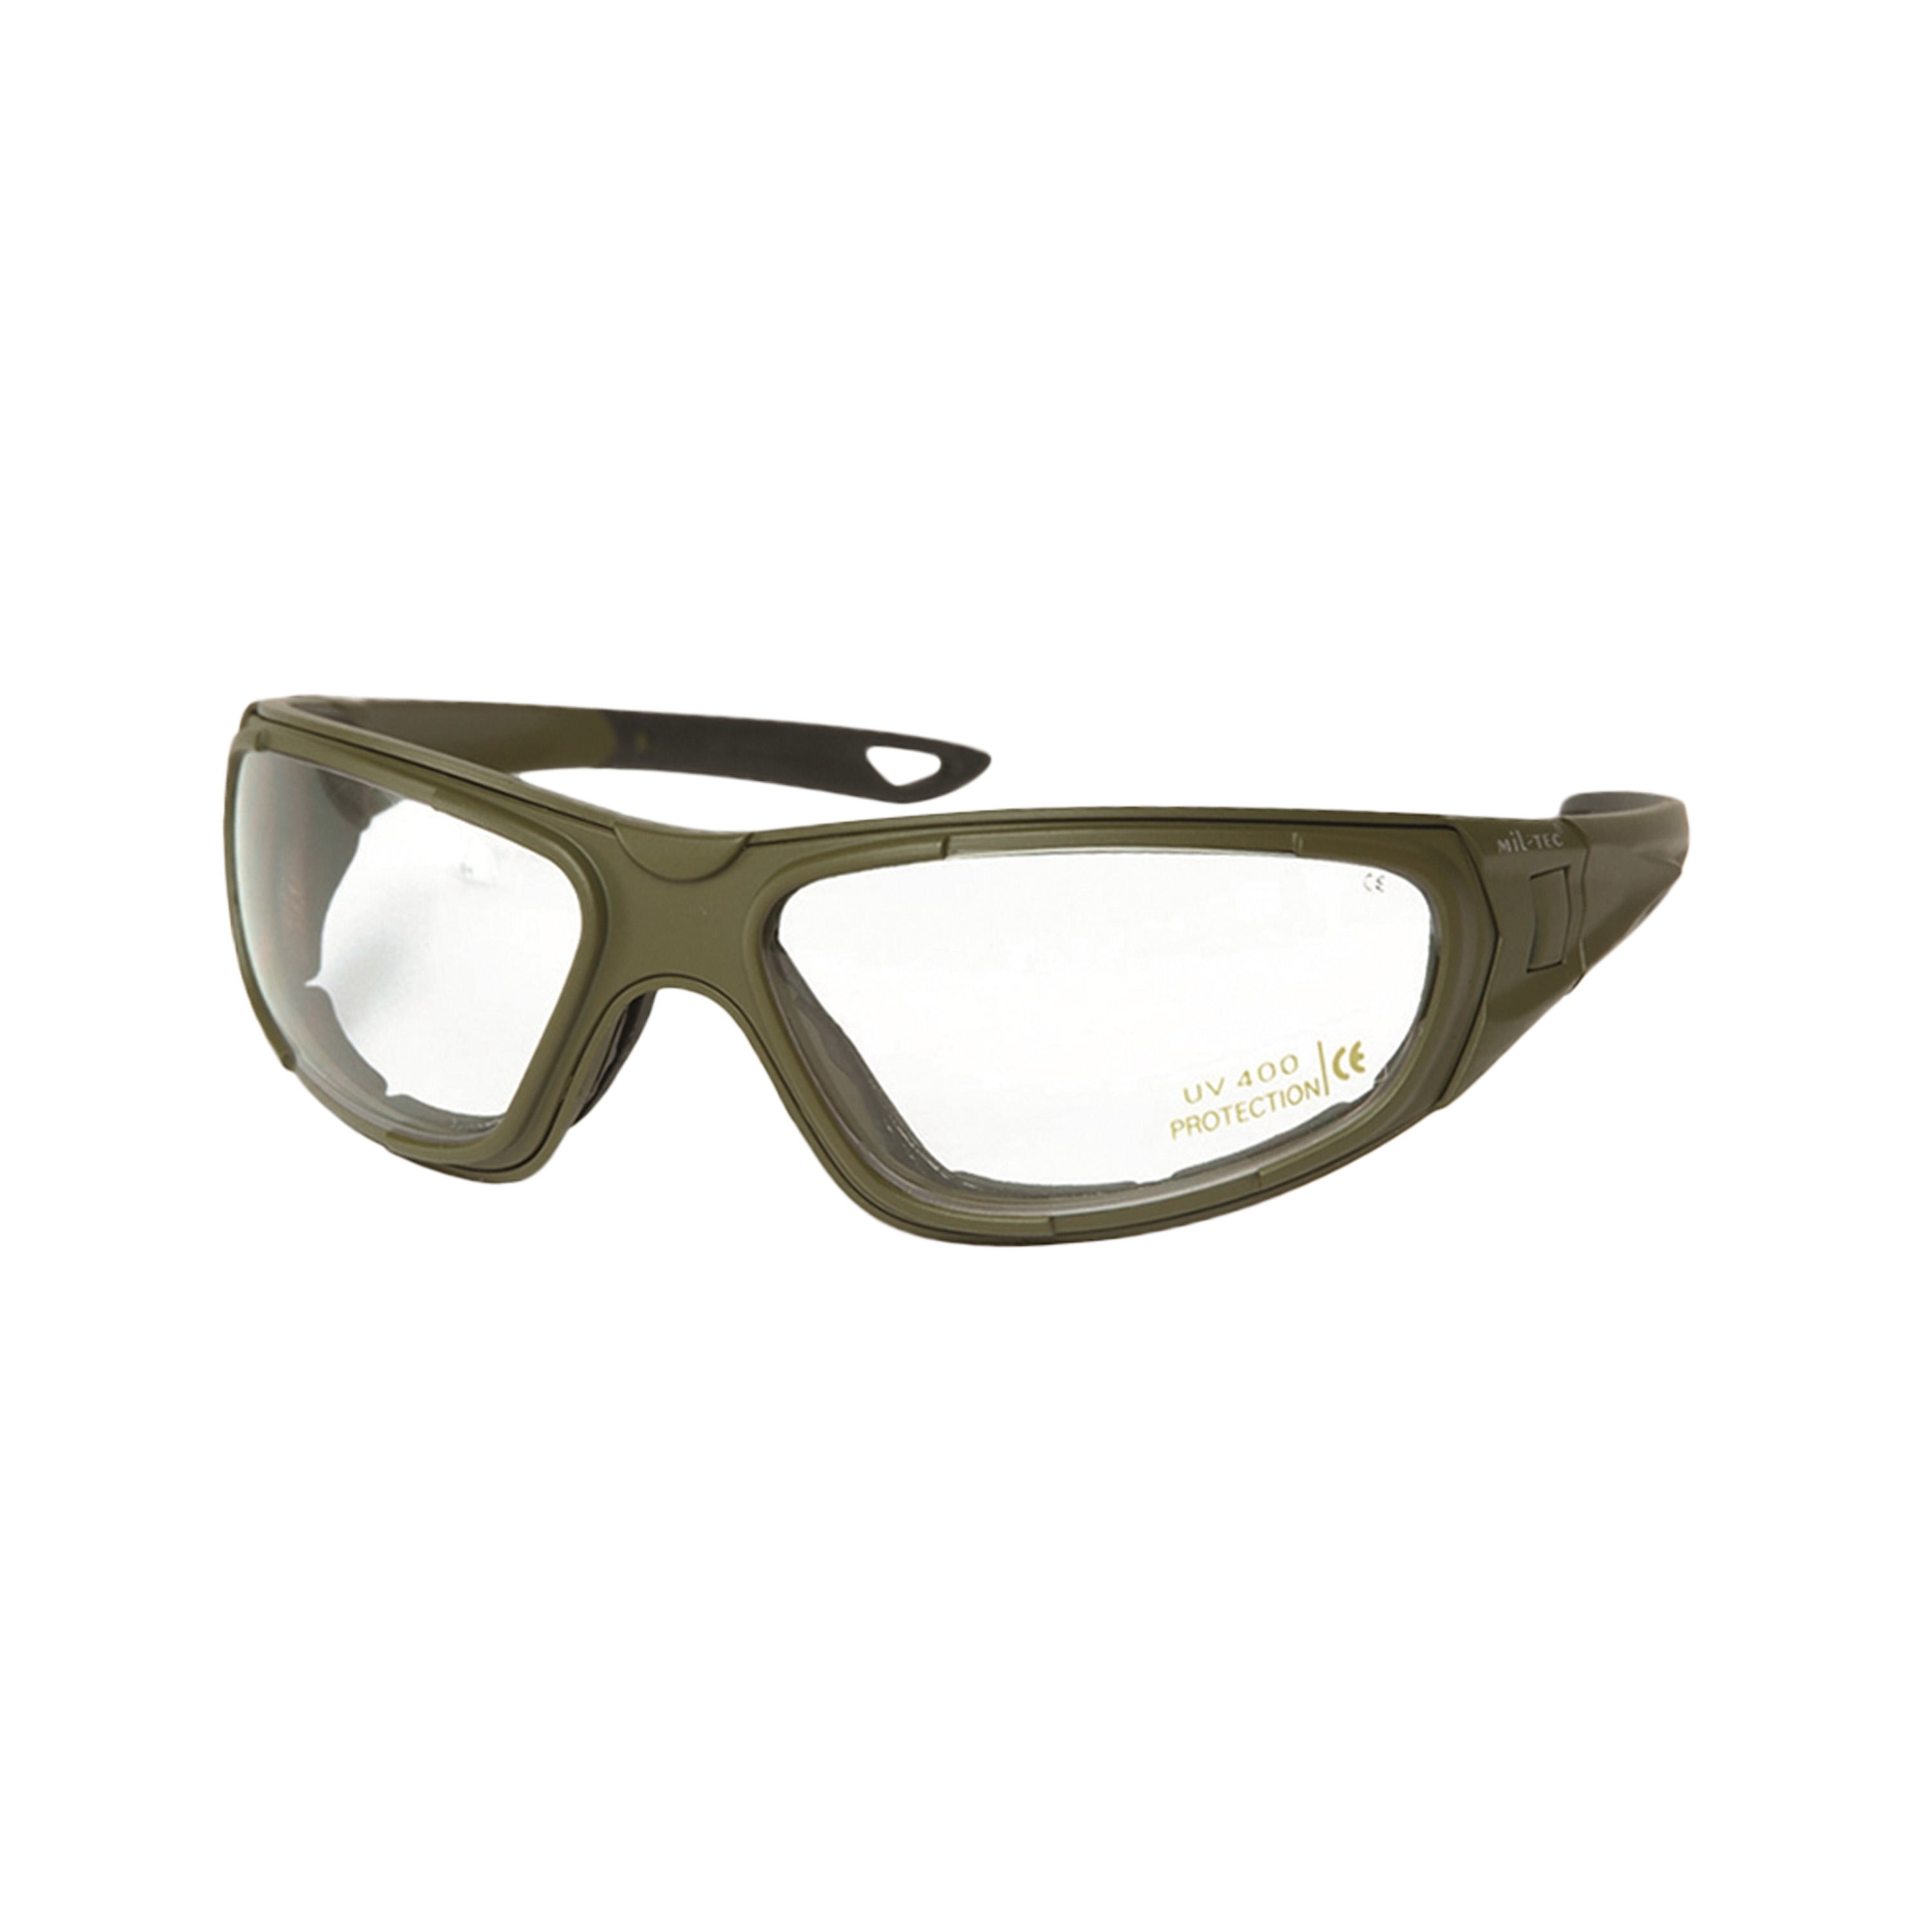 Tactical Glasses 3in1 olive